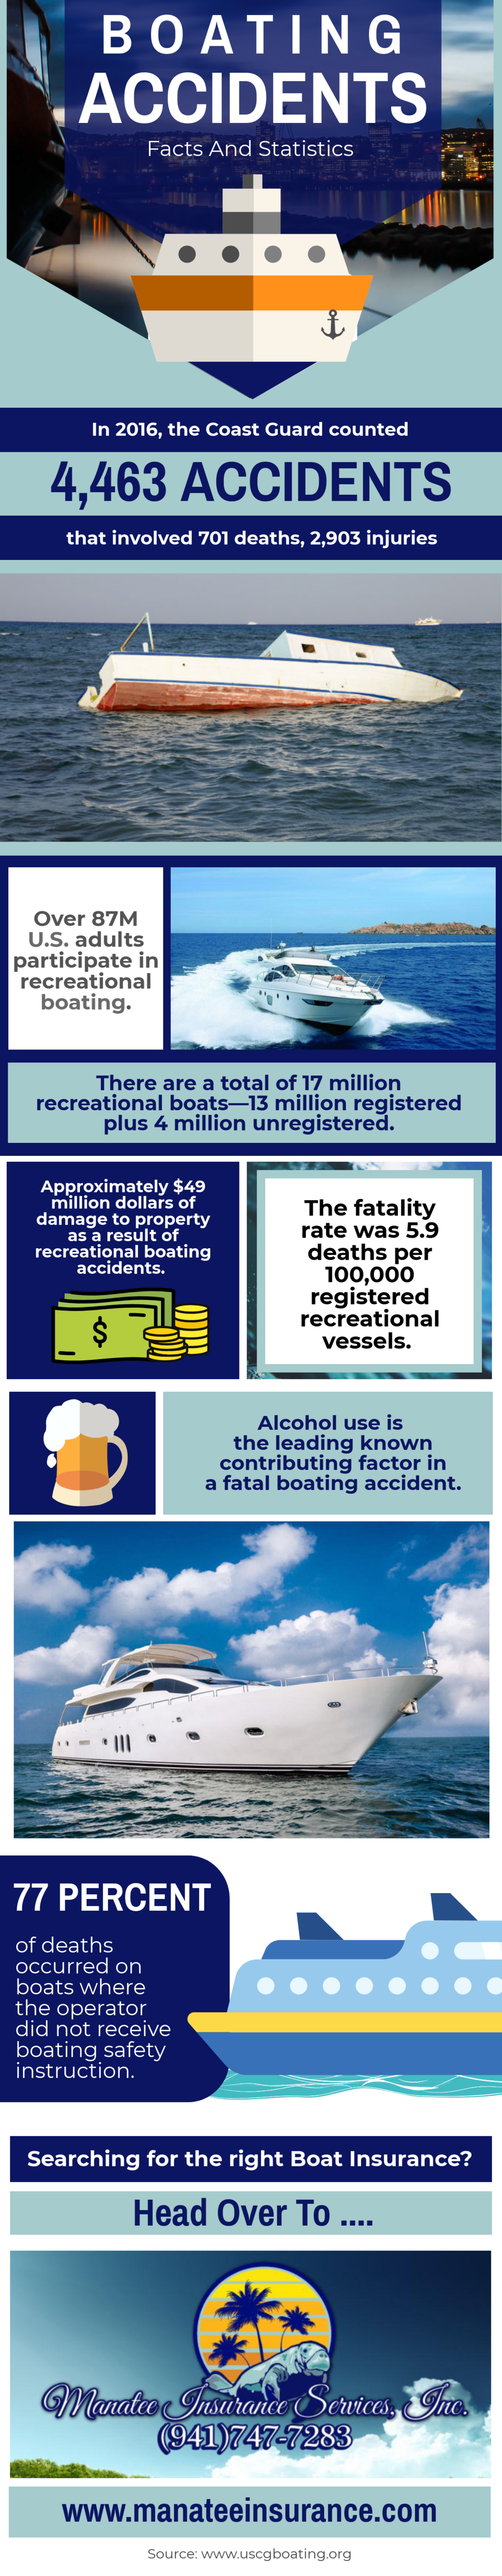 Boating Accidents Facts